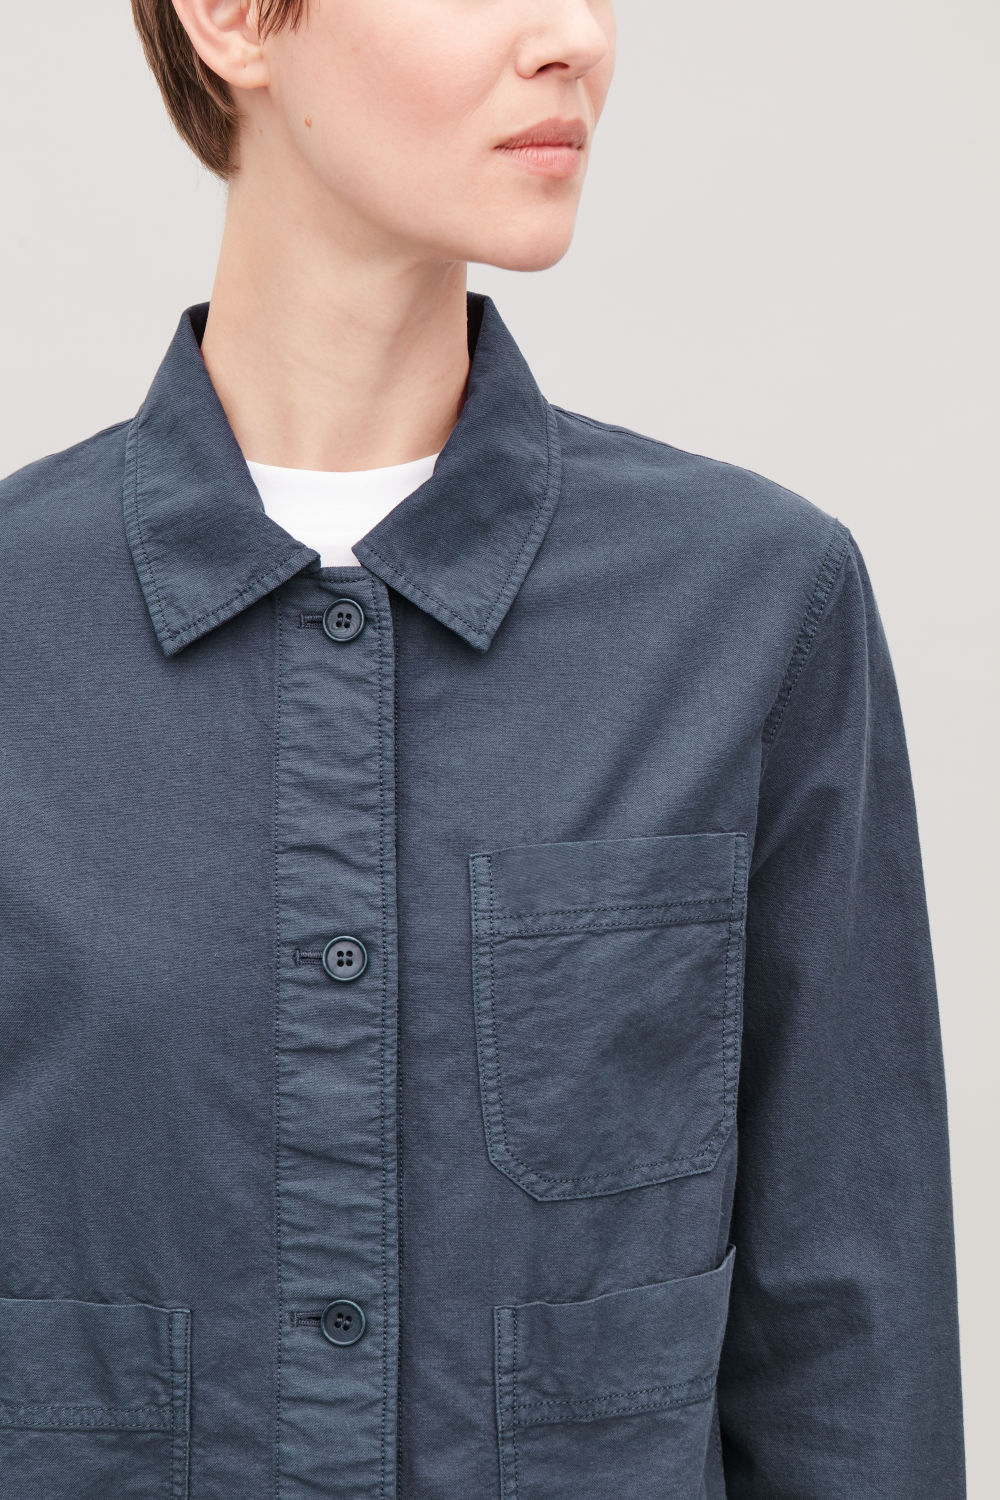 TOPSTITCHED SHIRT JACKET